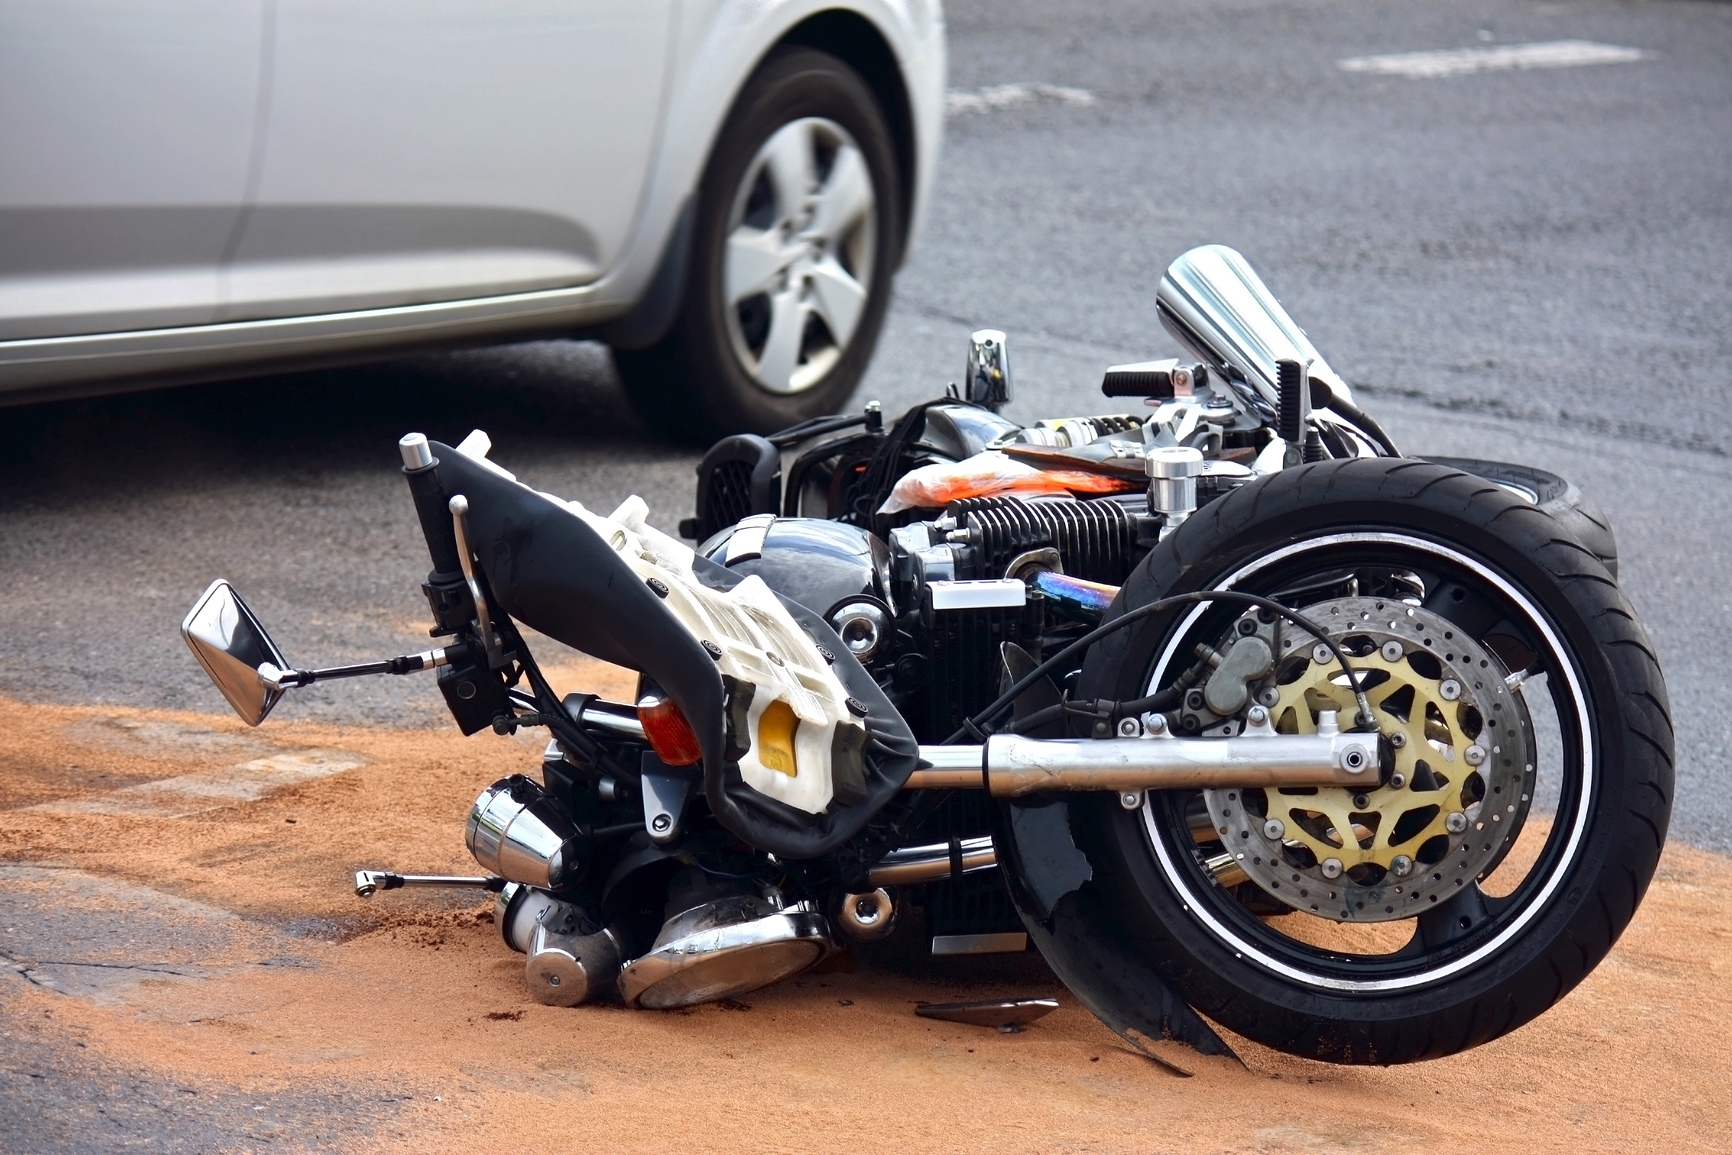 Image result for Get compensation for the death injury and motorcycle accidents